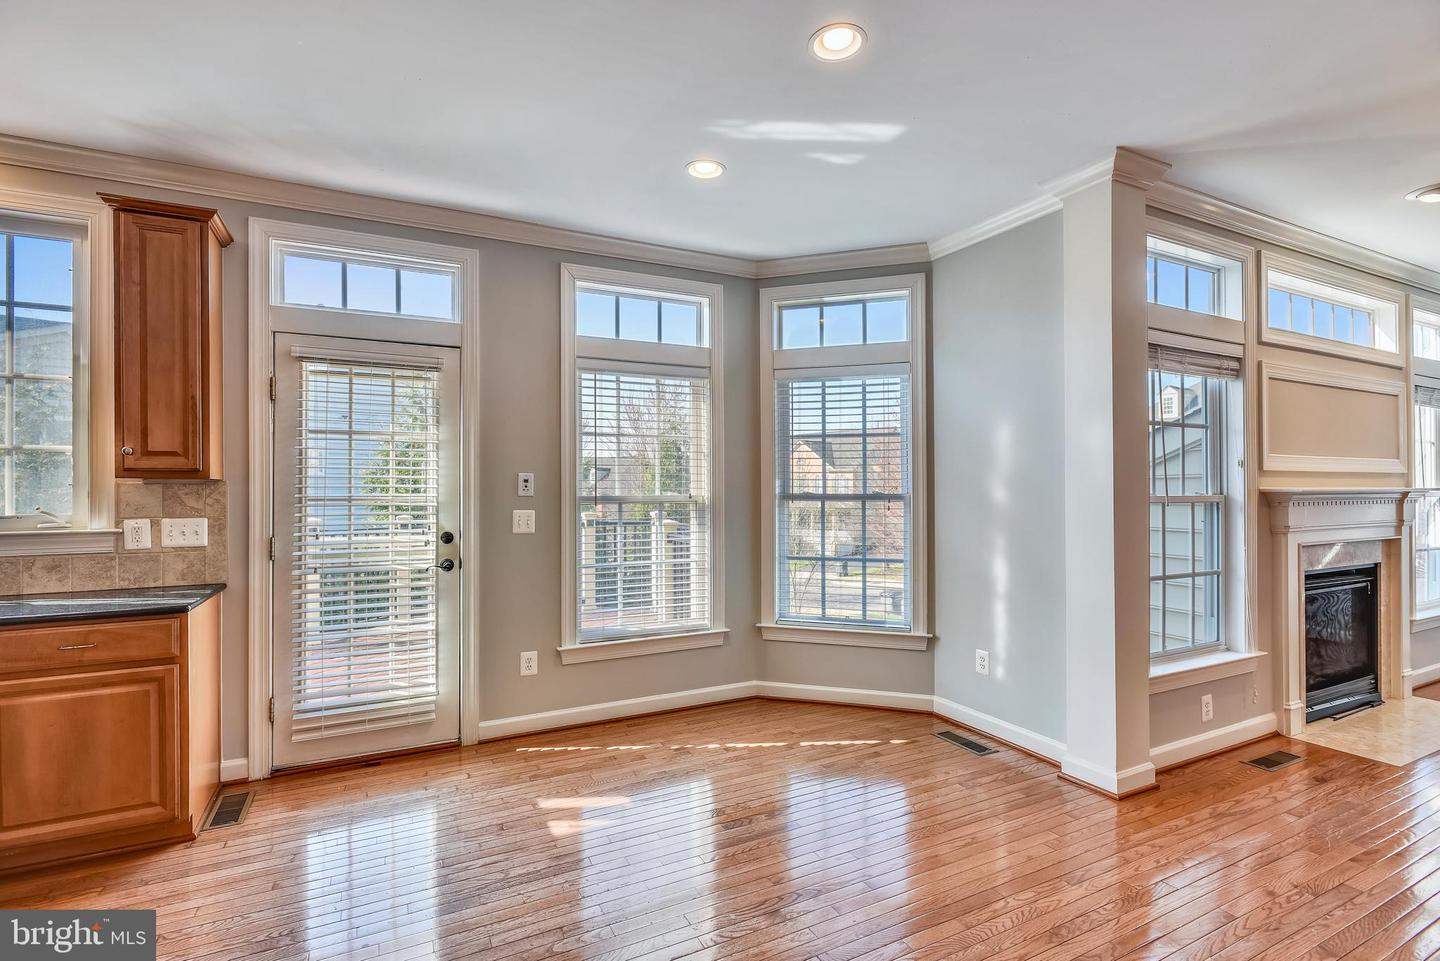 Additional photo for property listing at 21058 Courtland Village Dr Leesburg, Virginia 20175 United States